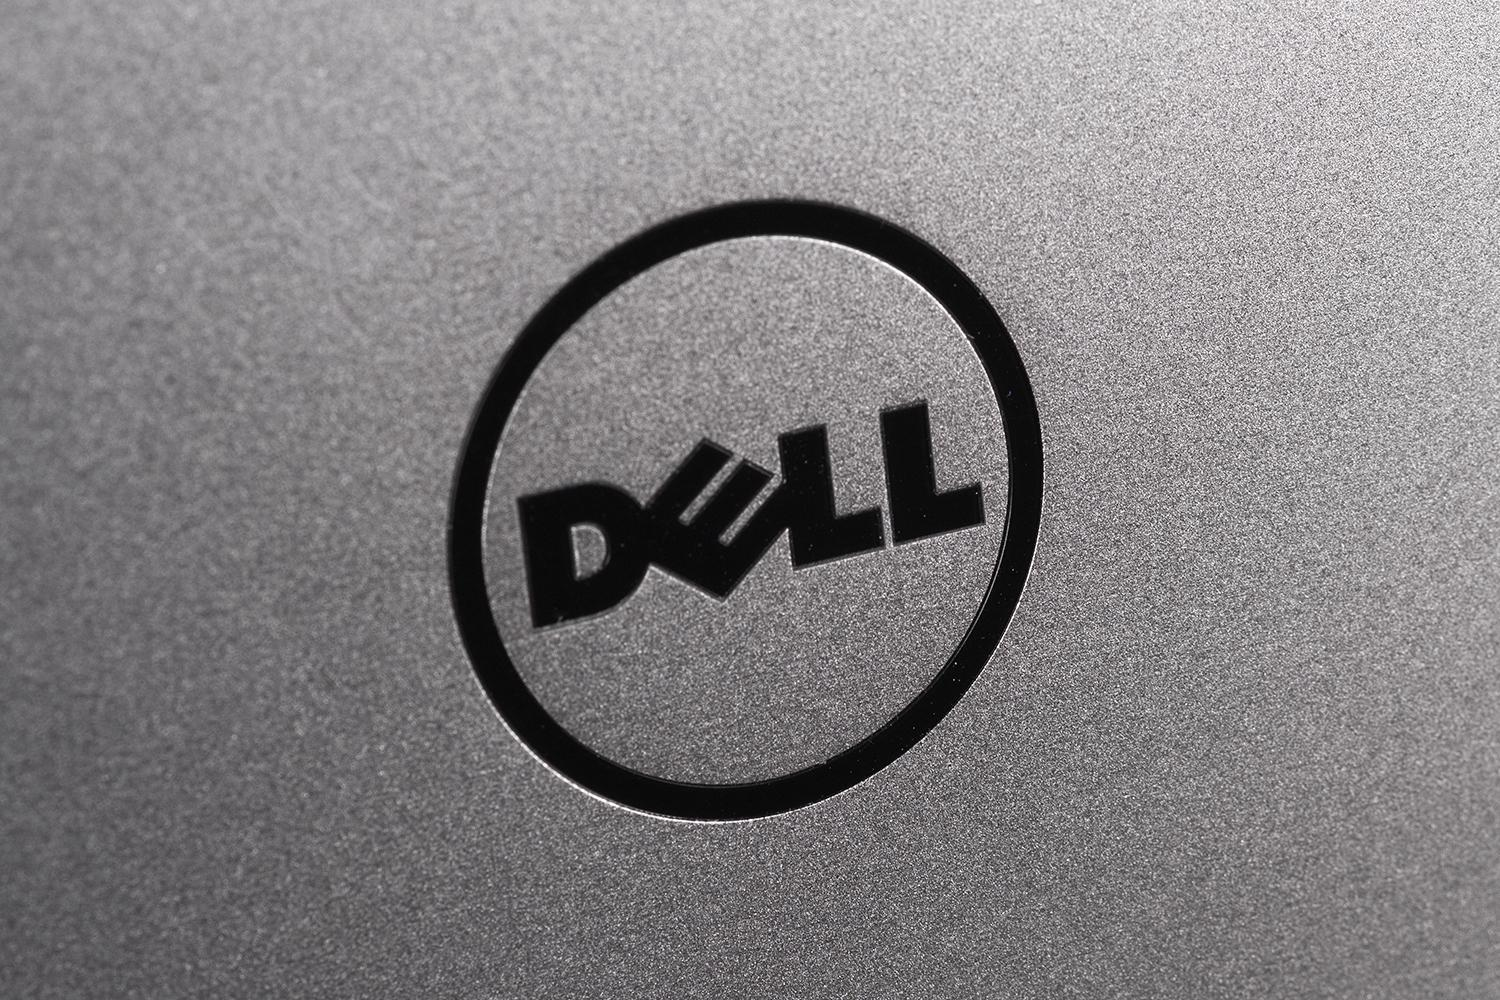 Update: Some Dell computers have vulnerable HTTPS credential, removal instructions issued